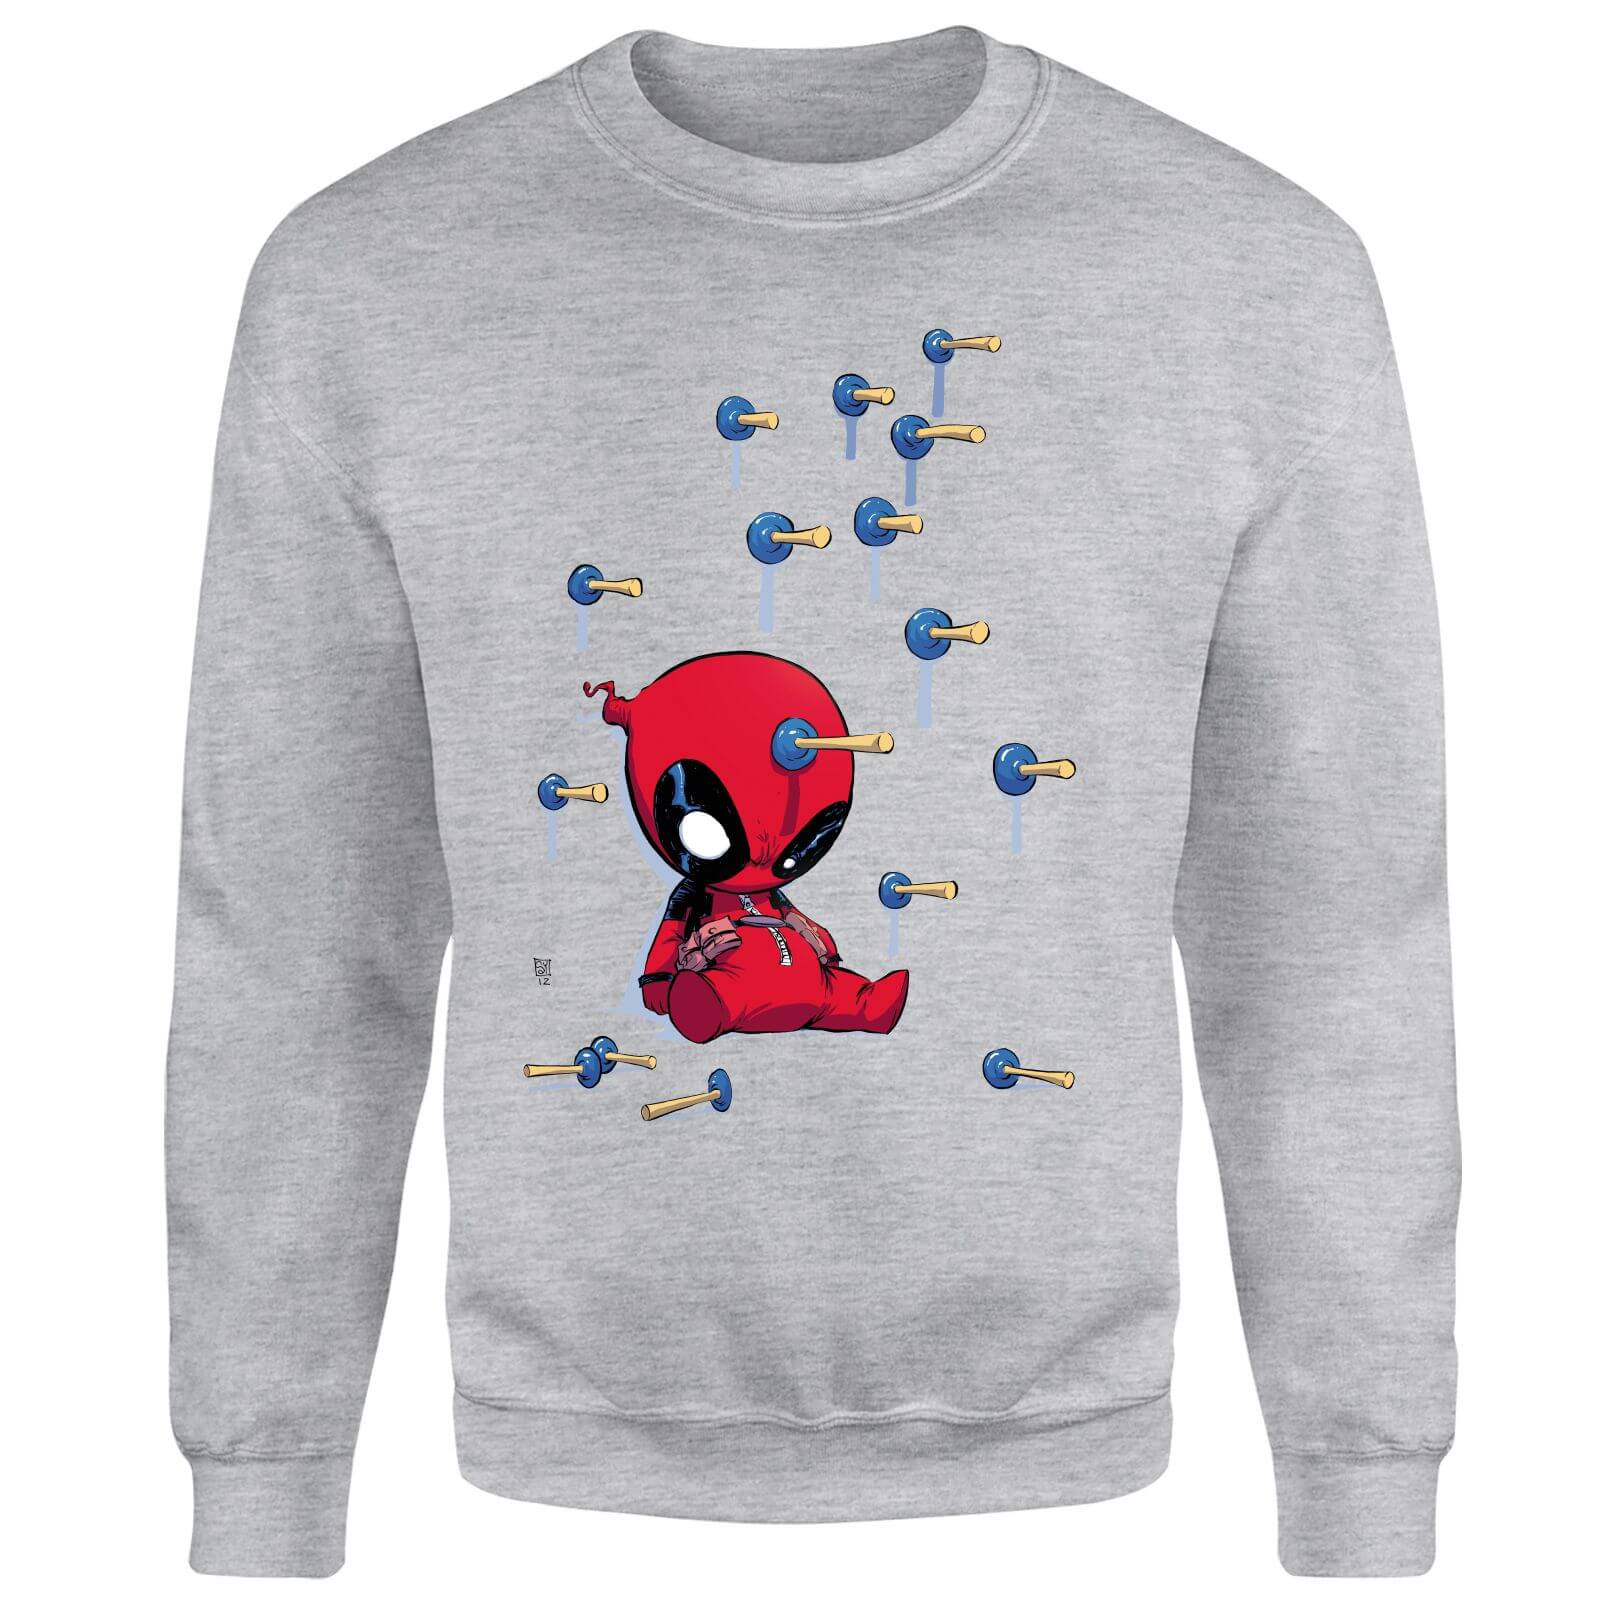 Marvel Deadpool Cartoon Knockout Sweatshirt - Grey